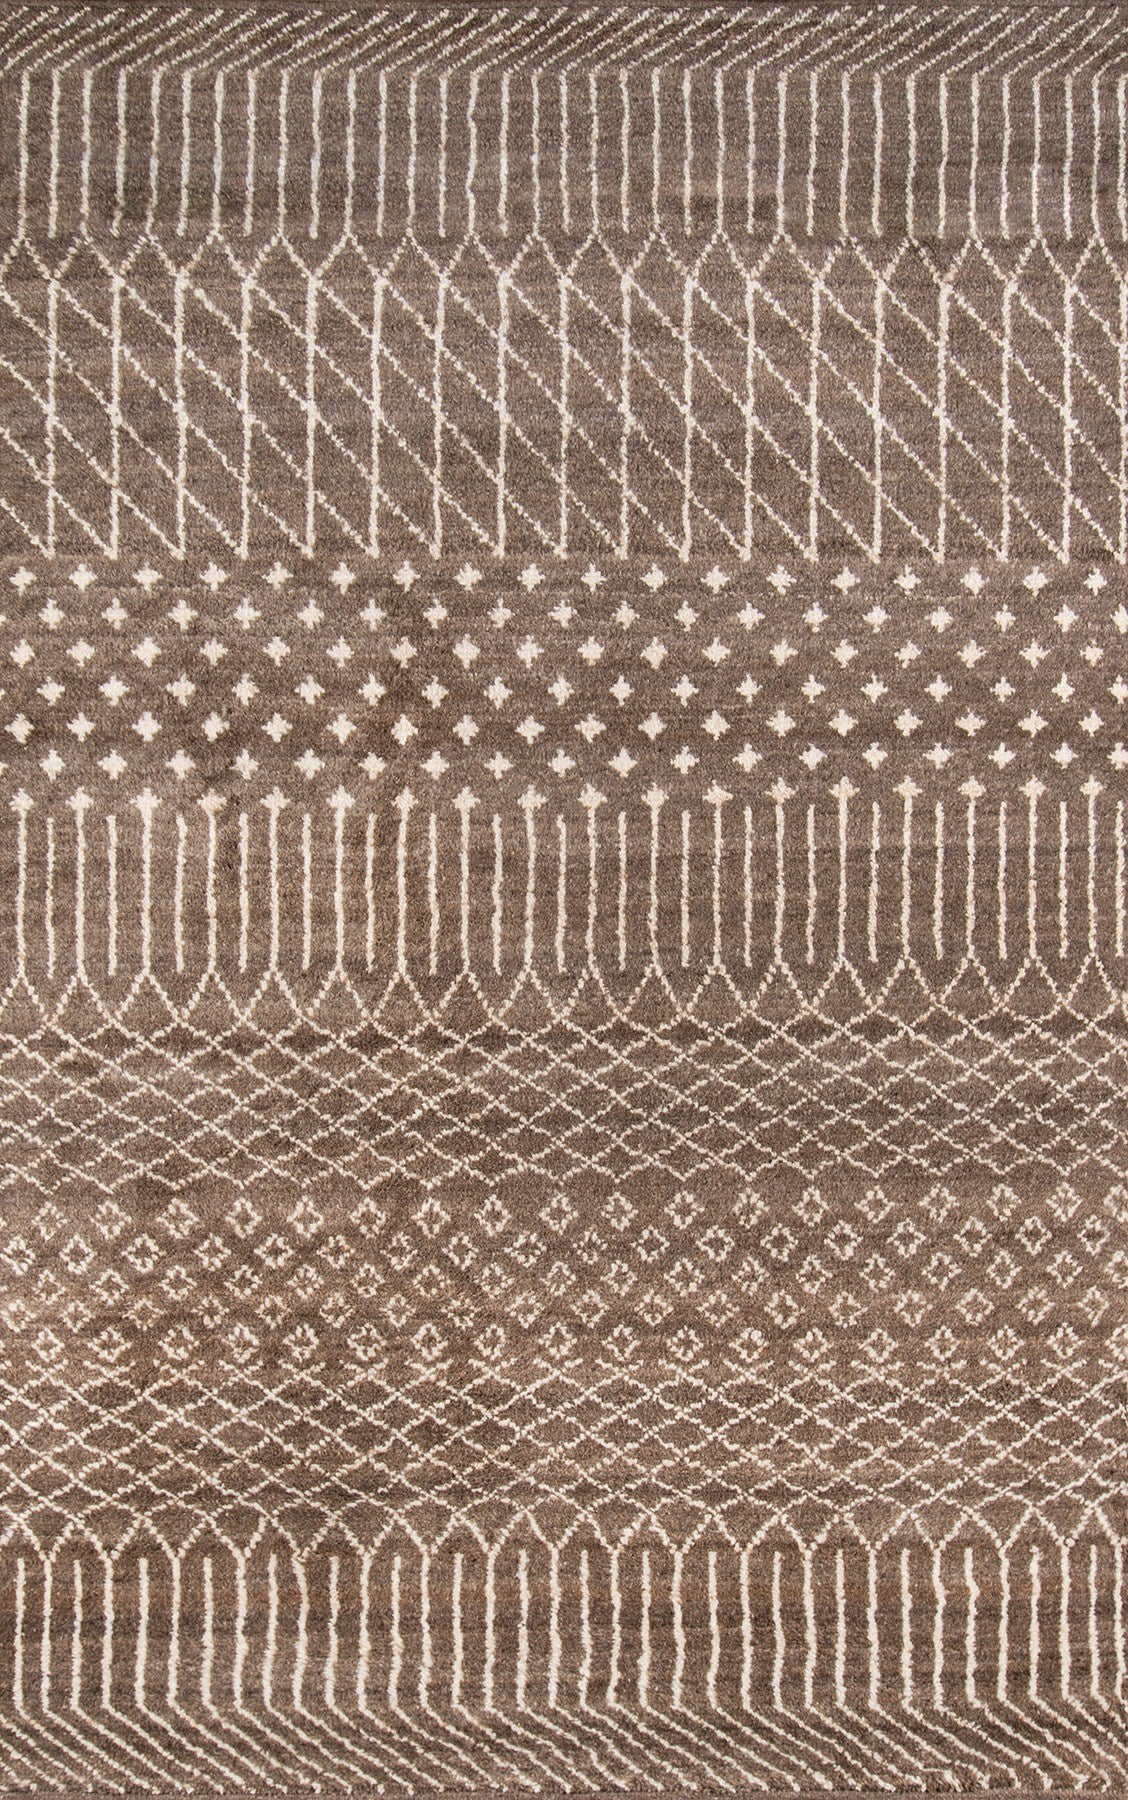 Momeni Atlas ATL-6 Brown Area Rug main image